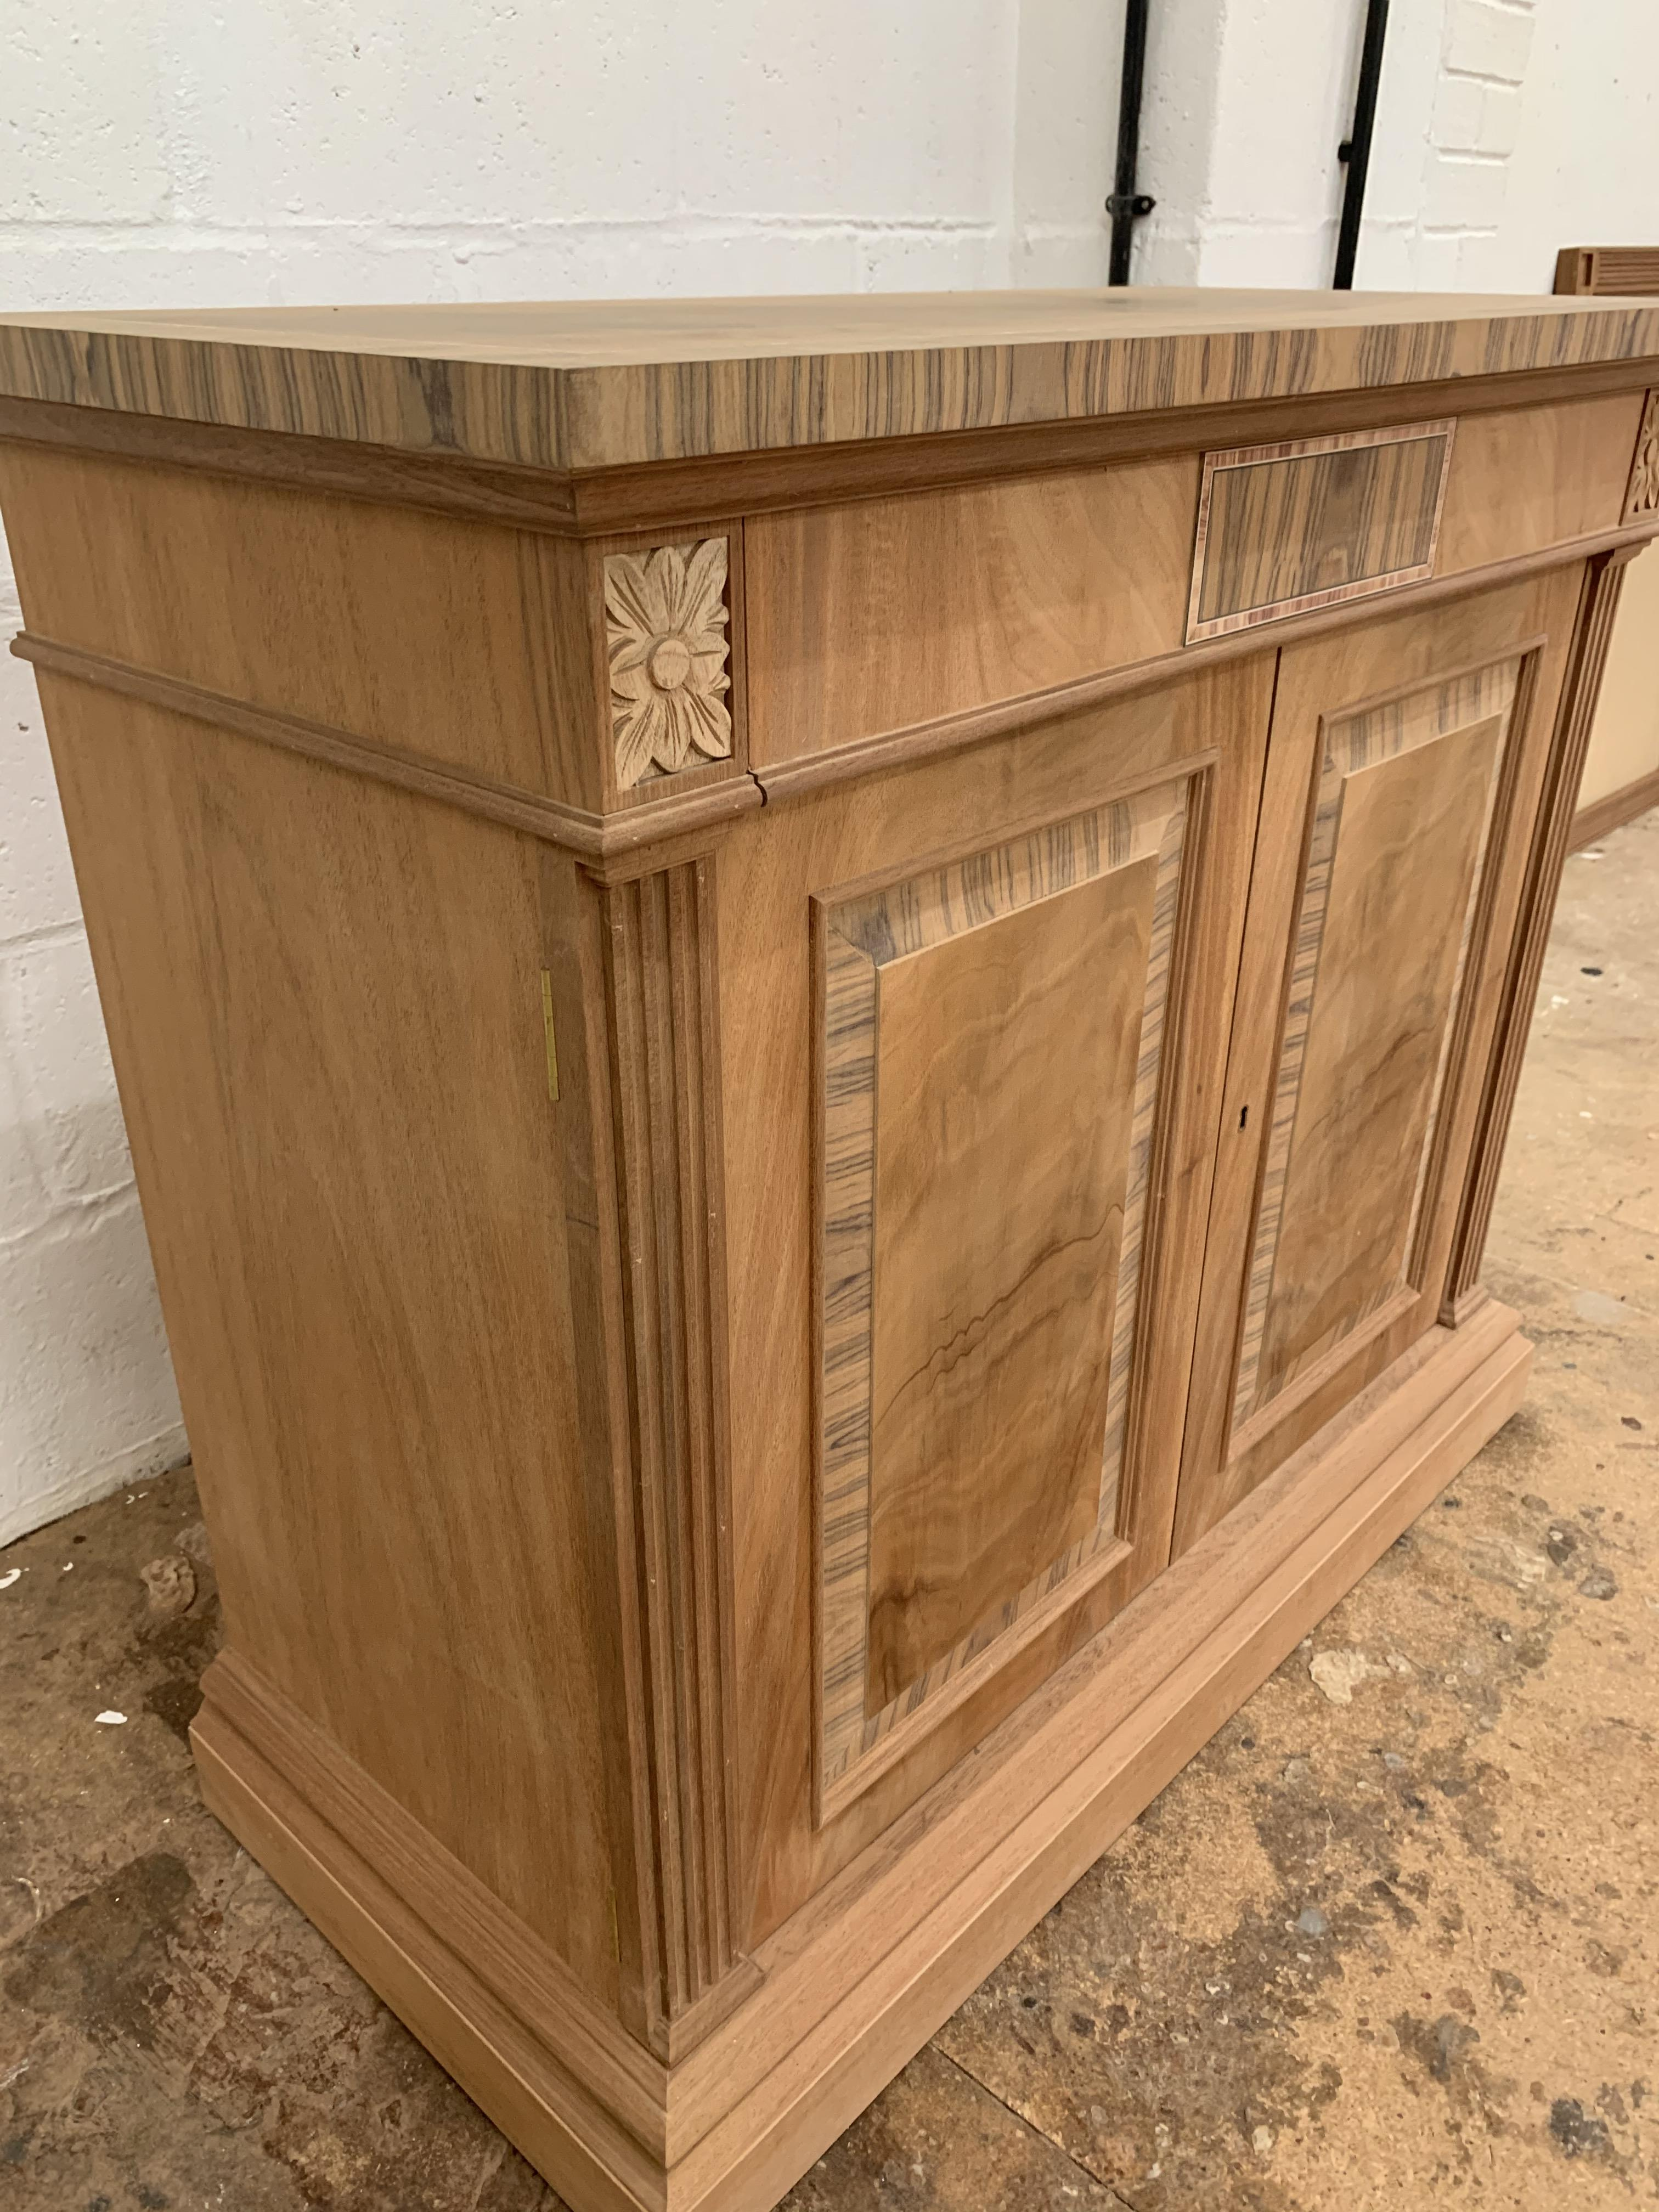 Lot 19 - Small two-door Sideboard, in Mahogany finish, from the Corinthian range, requires finishing/